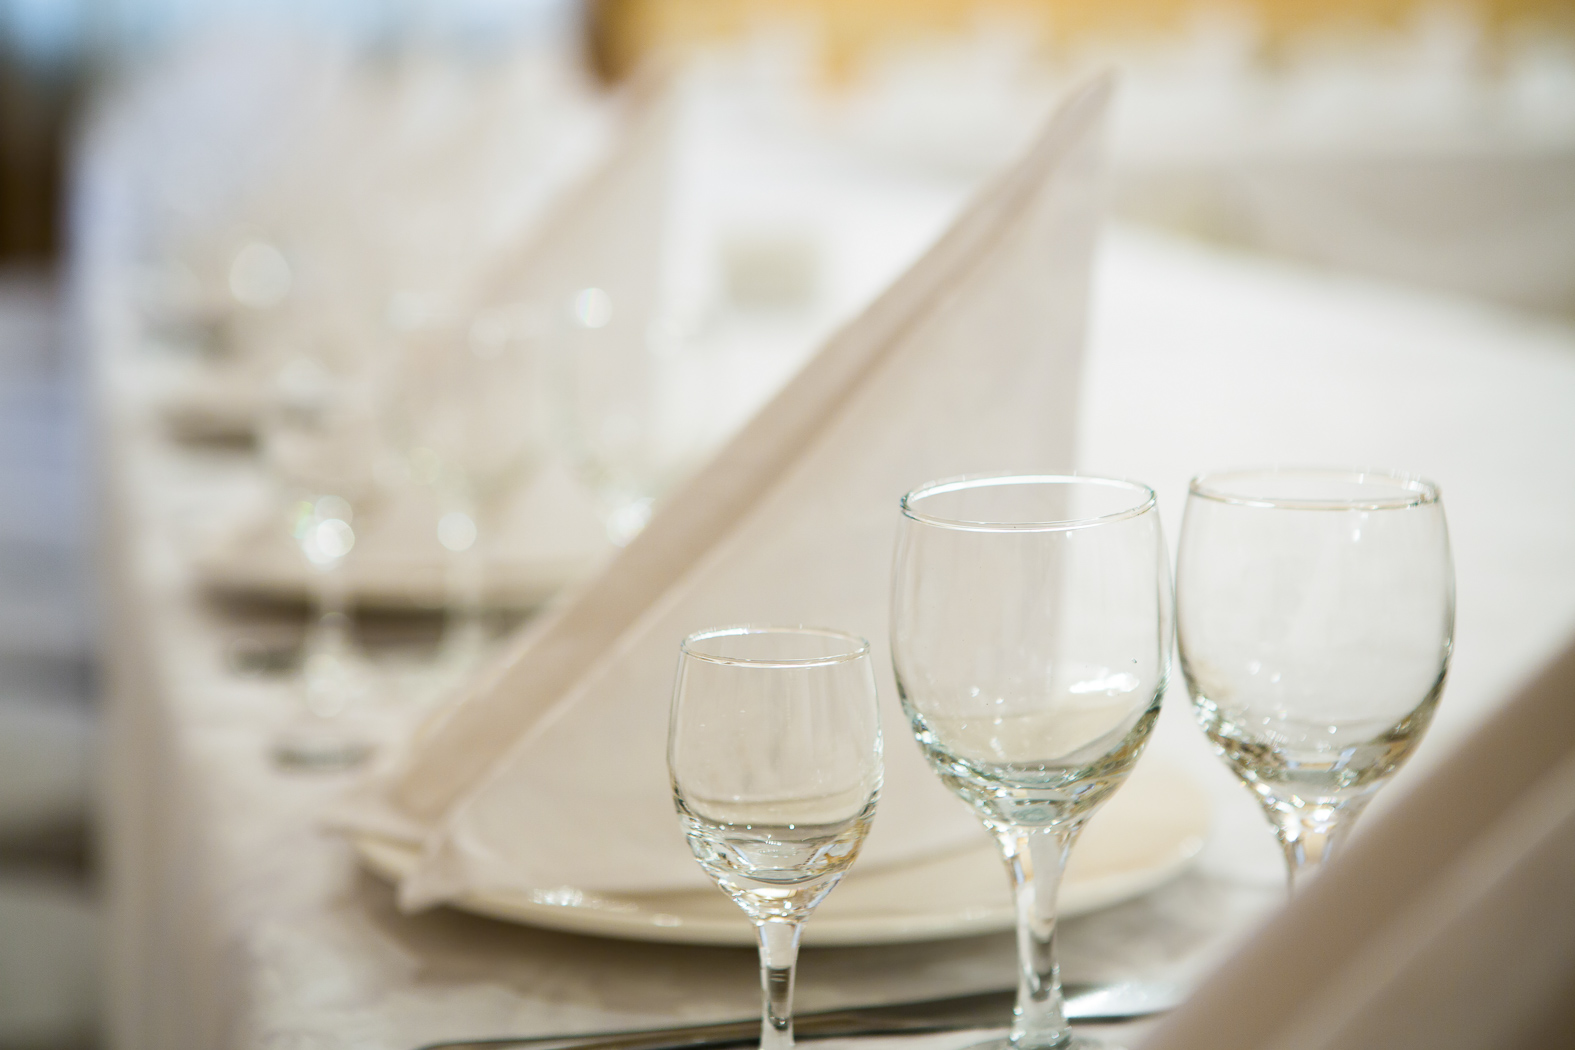 Fancy dining table set with white napkins, plates & crystal glasses